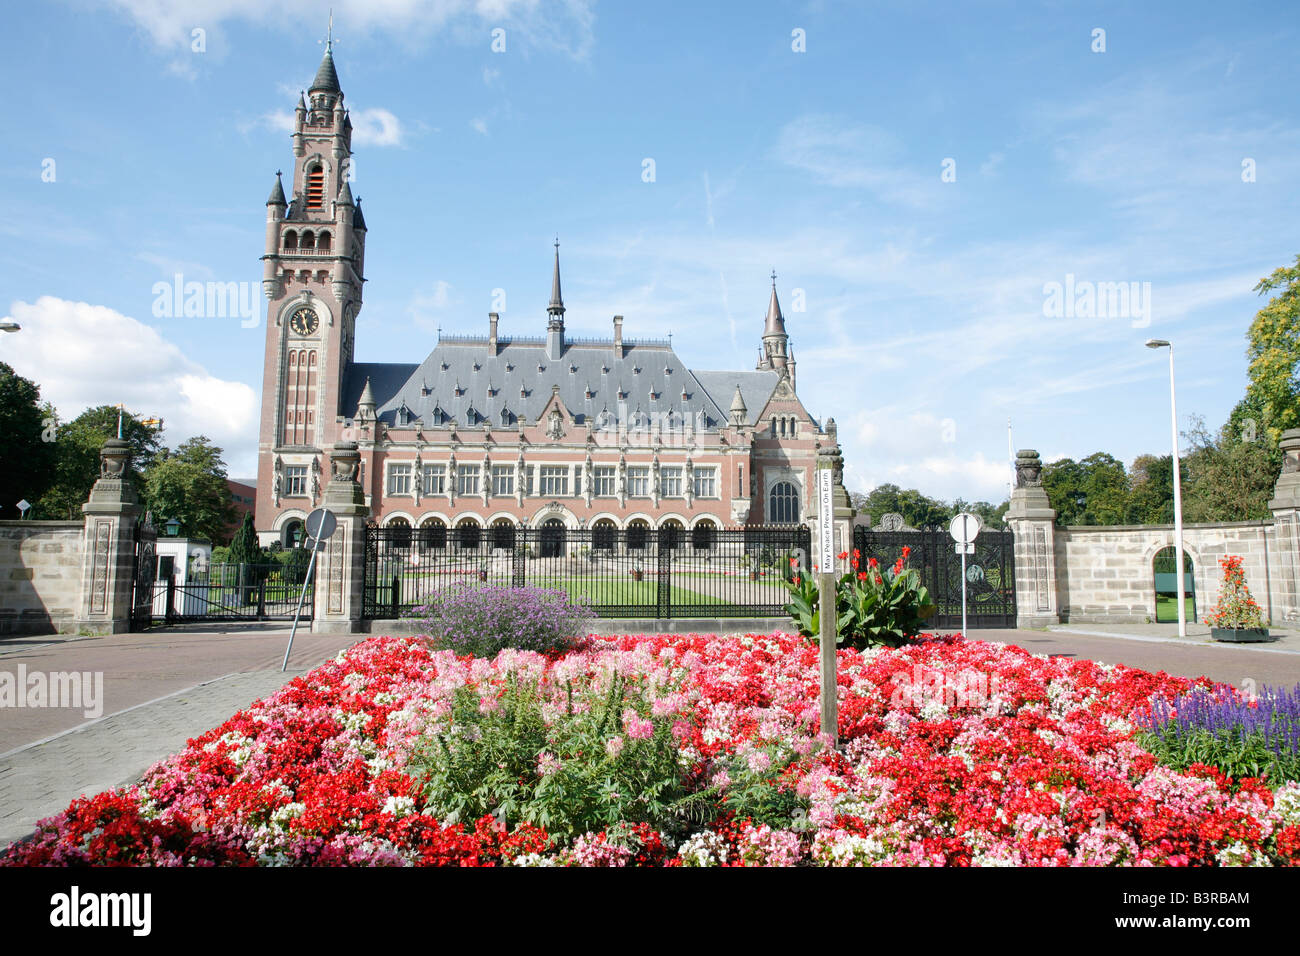 an analysis of the international court of justice at peace palace the hague An interdisciplinary analysis of the role of international law in promoting human   based in the hague, the conference will be hosted at the peace palace .